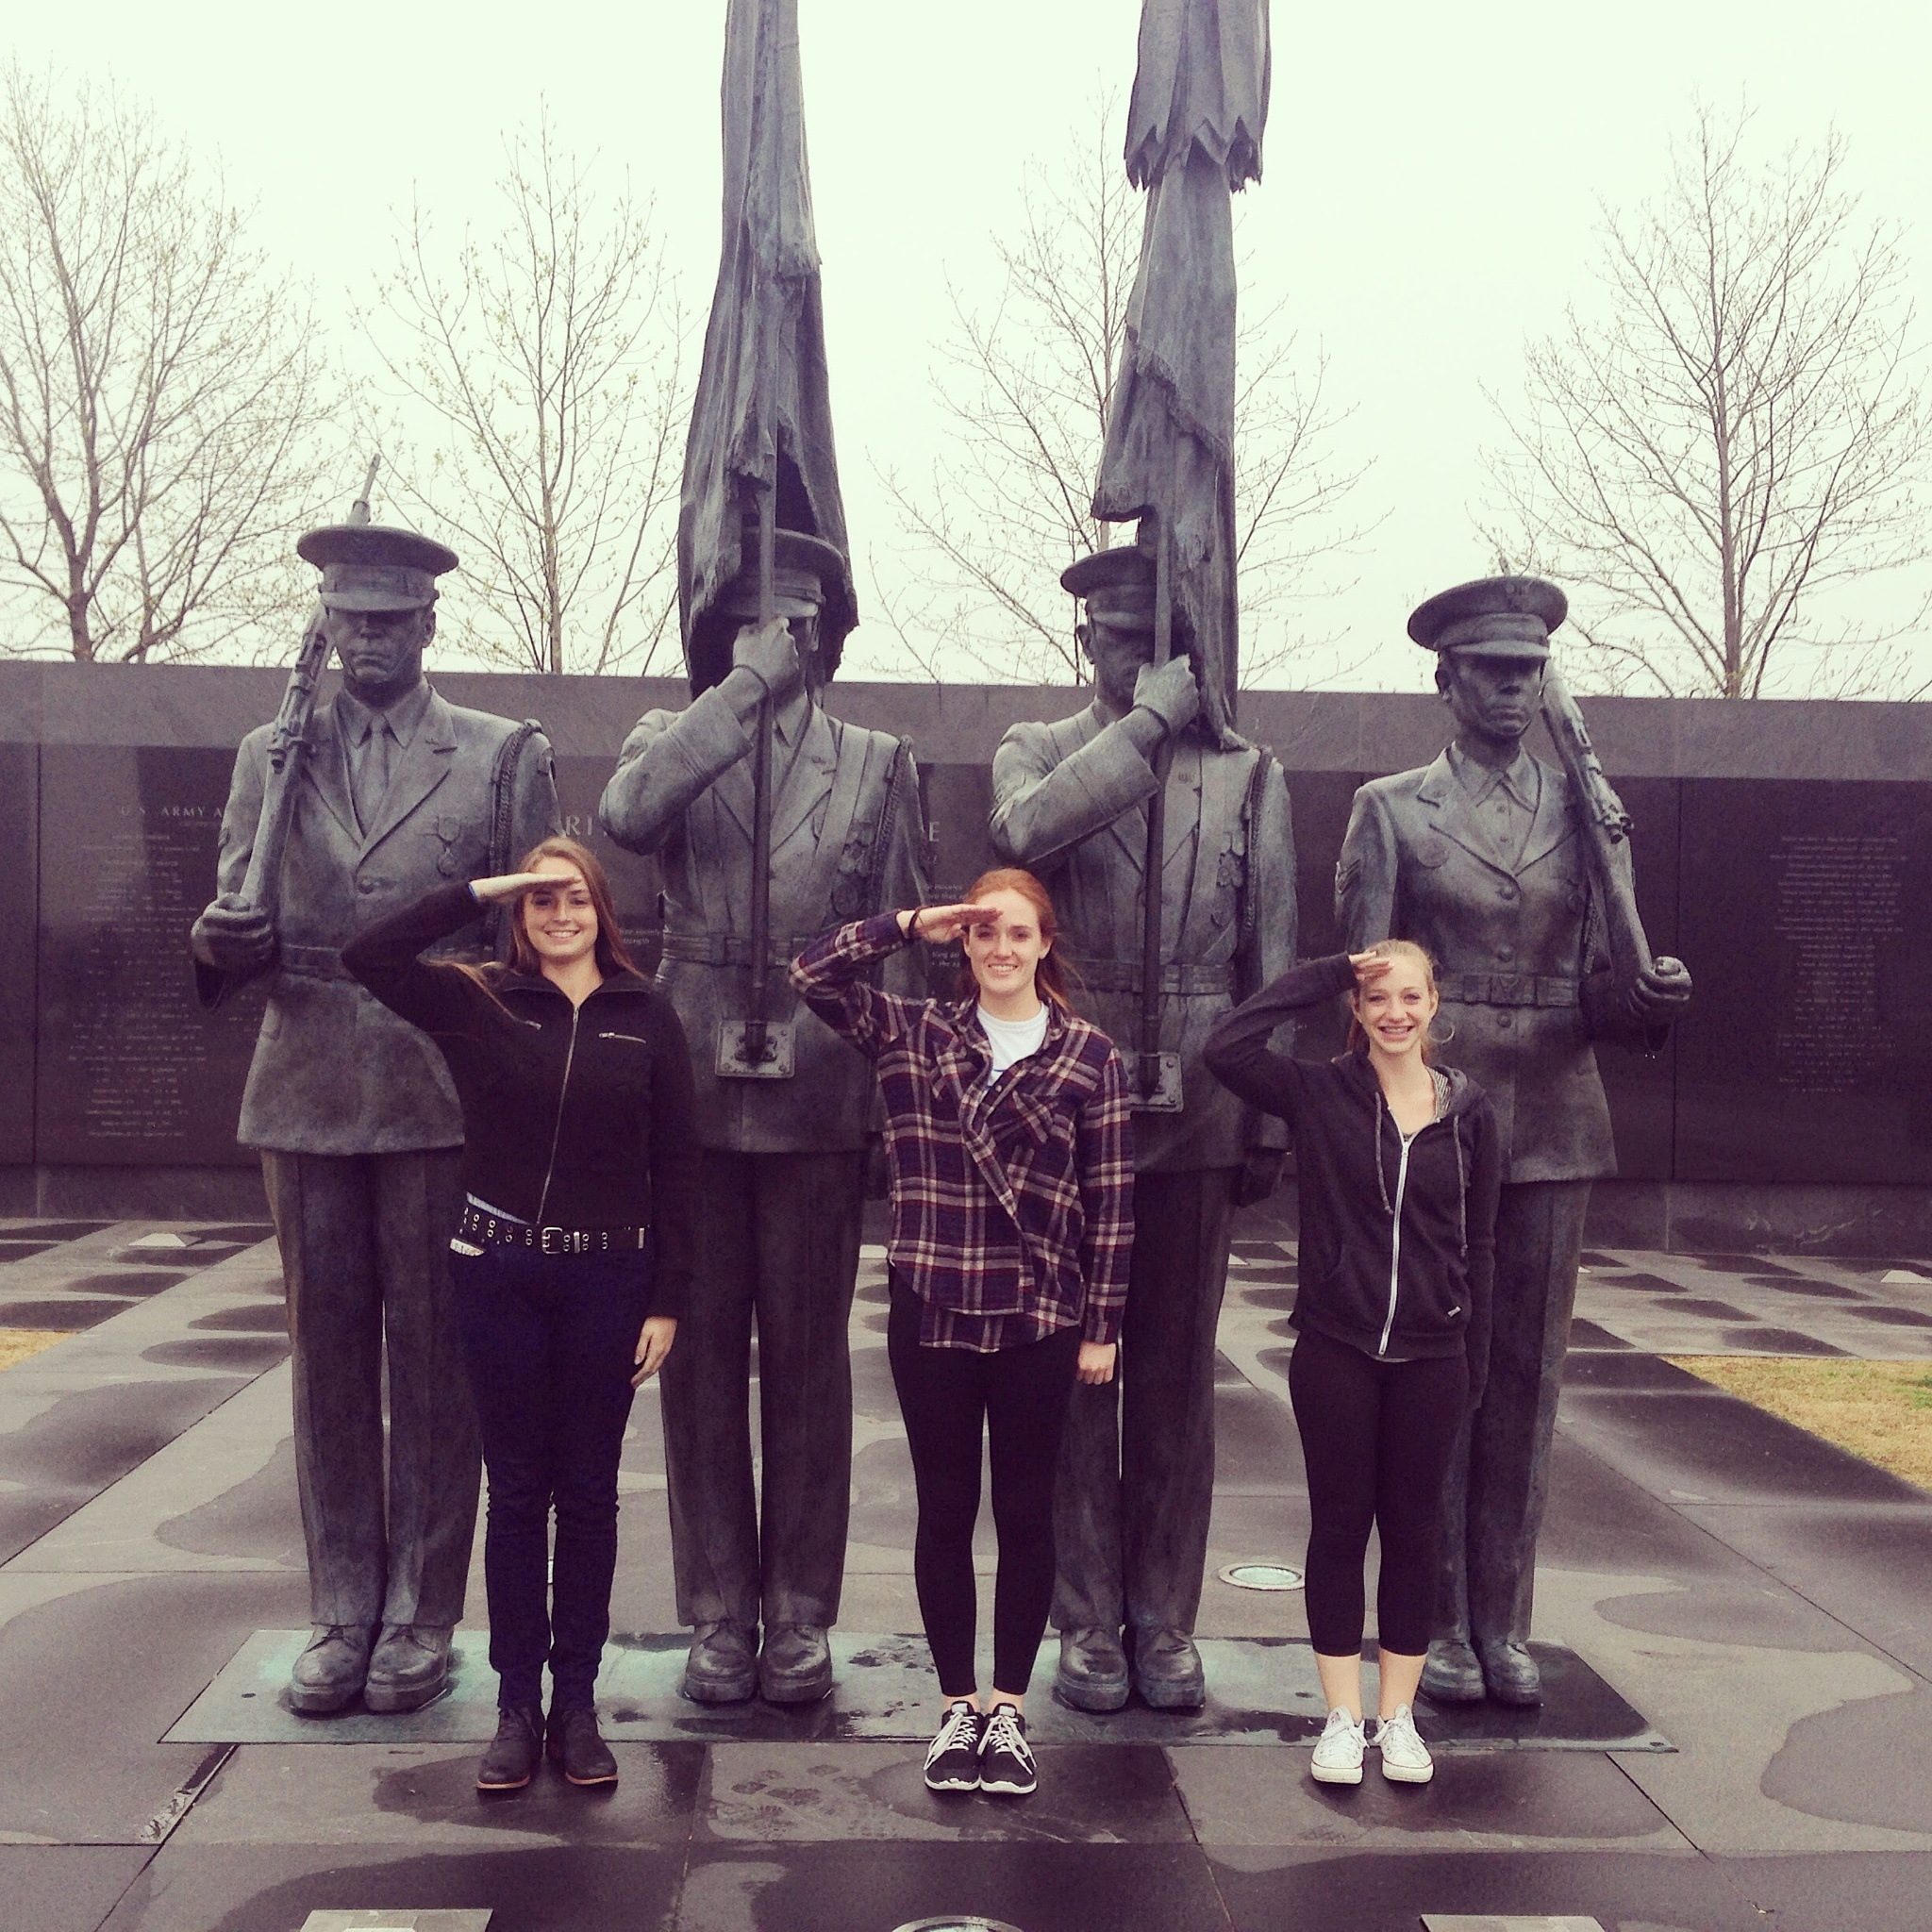 Saluting our troups by Rosekirk